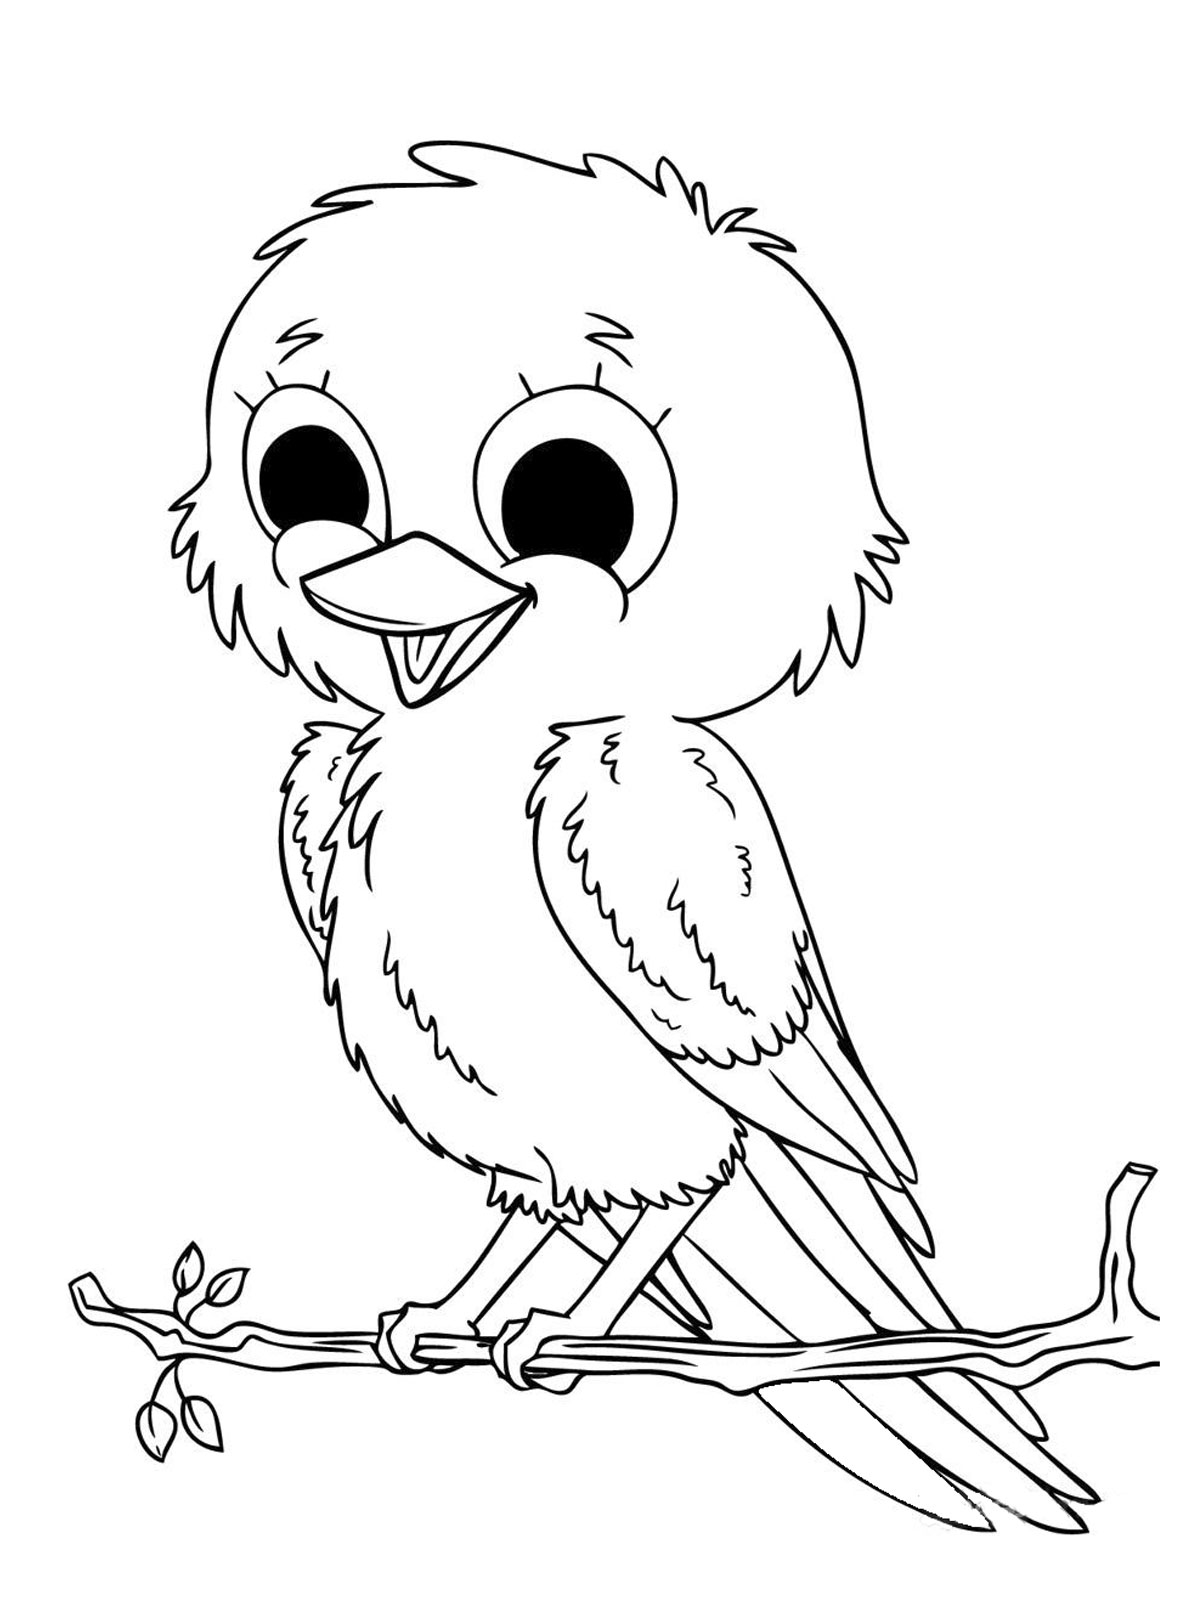 Coloring Pages for Girls Dr. Odd - Coloring Pages Galleries